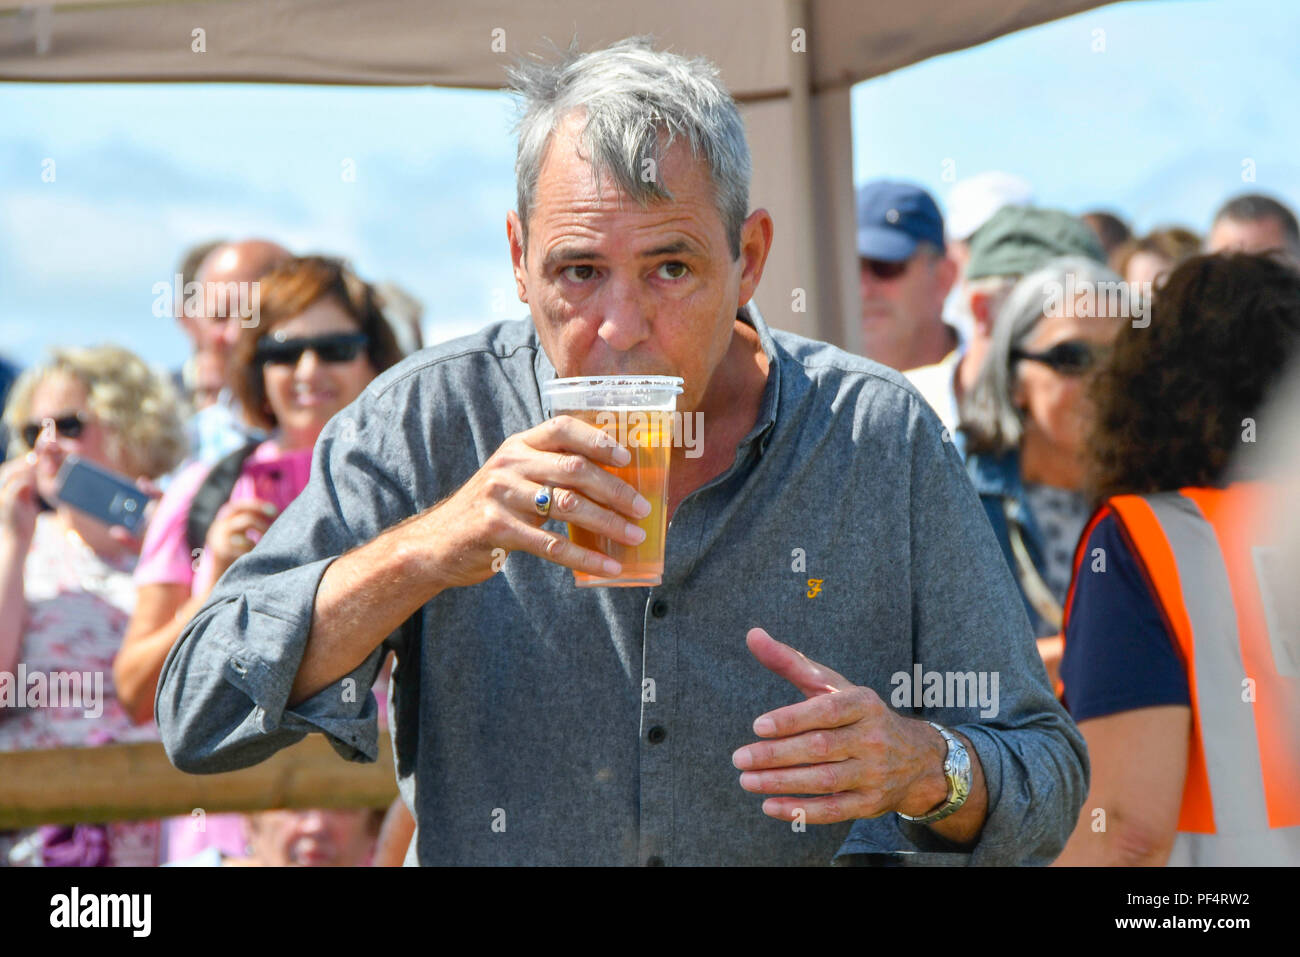 Beaminster, Dorset, UK.  19th August 2018. UK Weather.  Actor Neil Morrissey with a pint of lager at Buckham Fair at Beaminster, Dorset.  Picture Credit: Graham Hunt/Alamy Live News - Stock Image